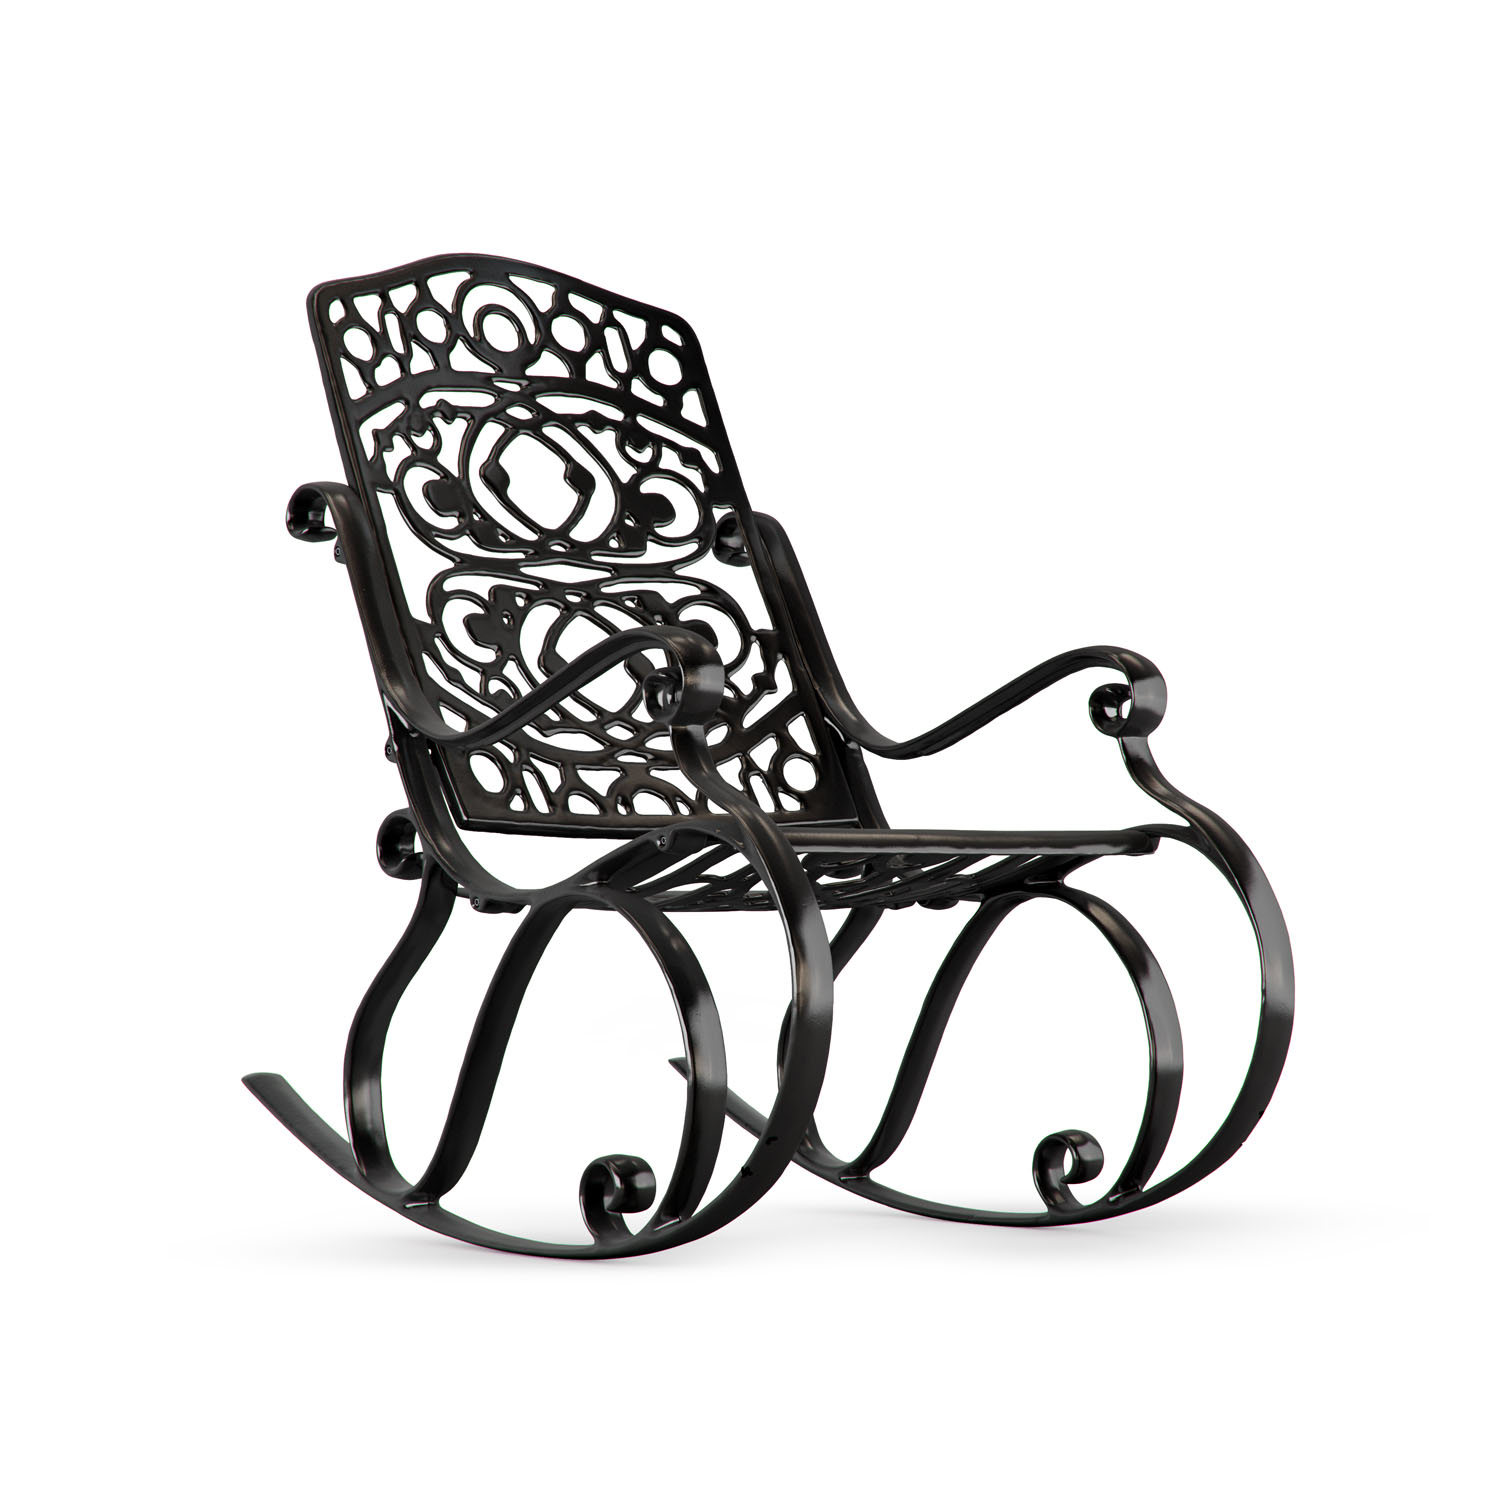 Trinidad rocking chair